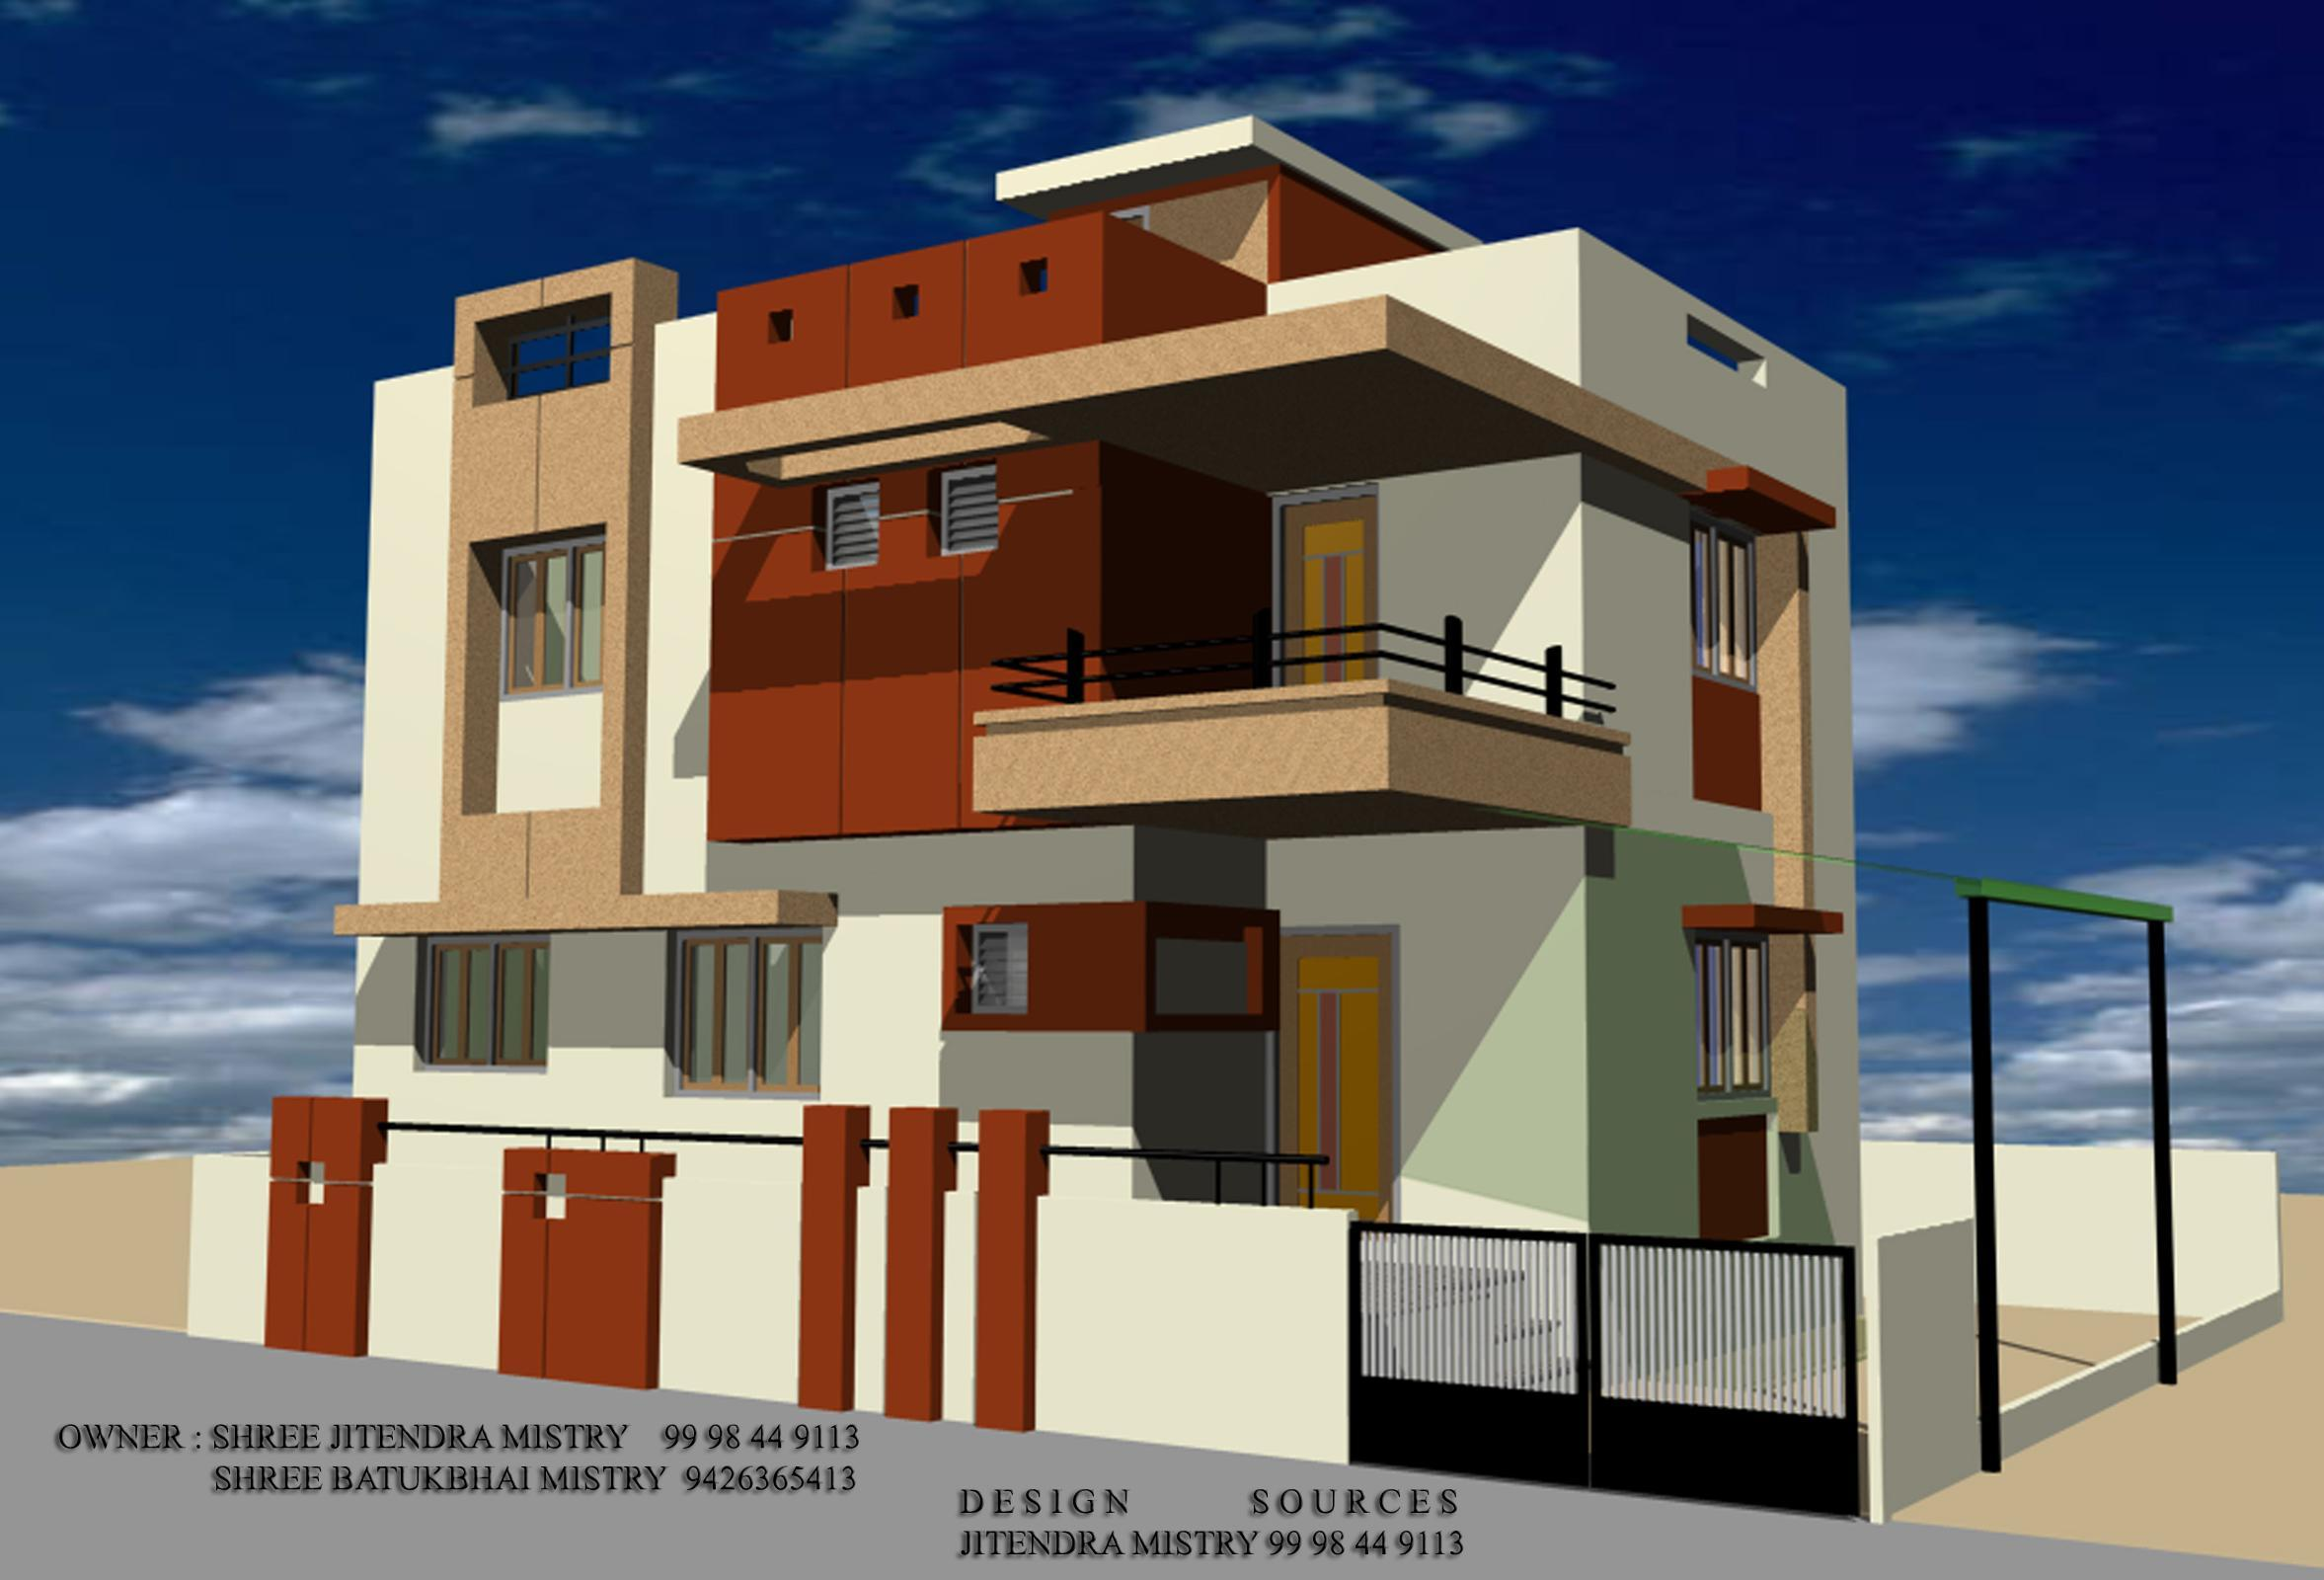 Architecture Building Front Elevation : Home design front elevation images modern house